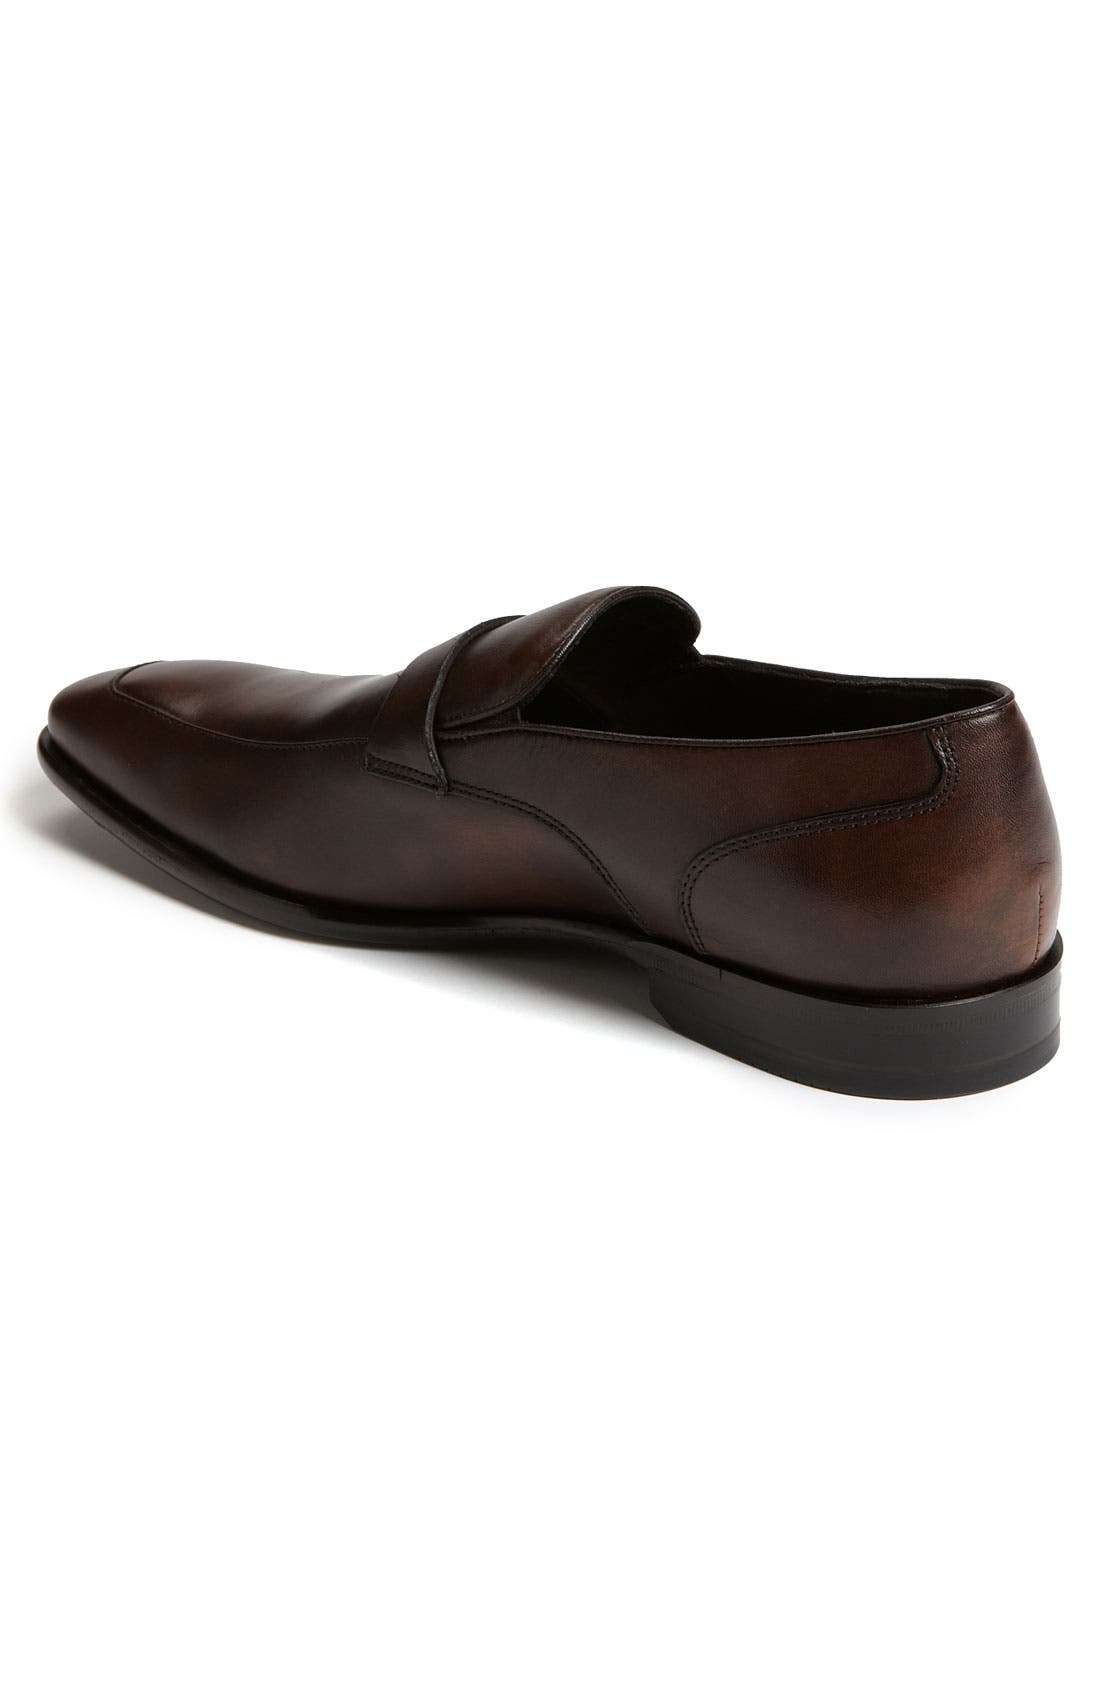 Alternate Image 2  - BOSS HUGO BOSS 'Metero' Loafer